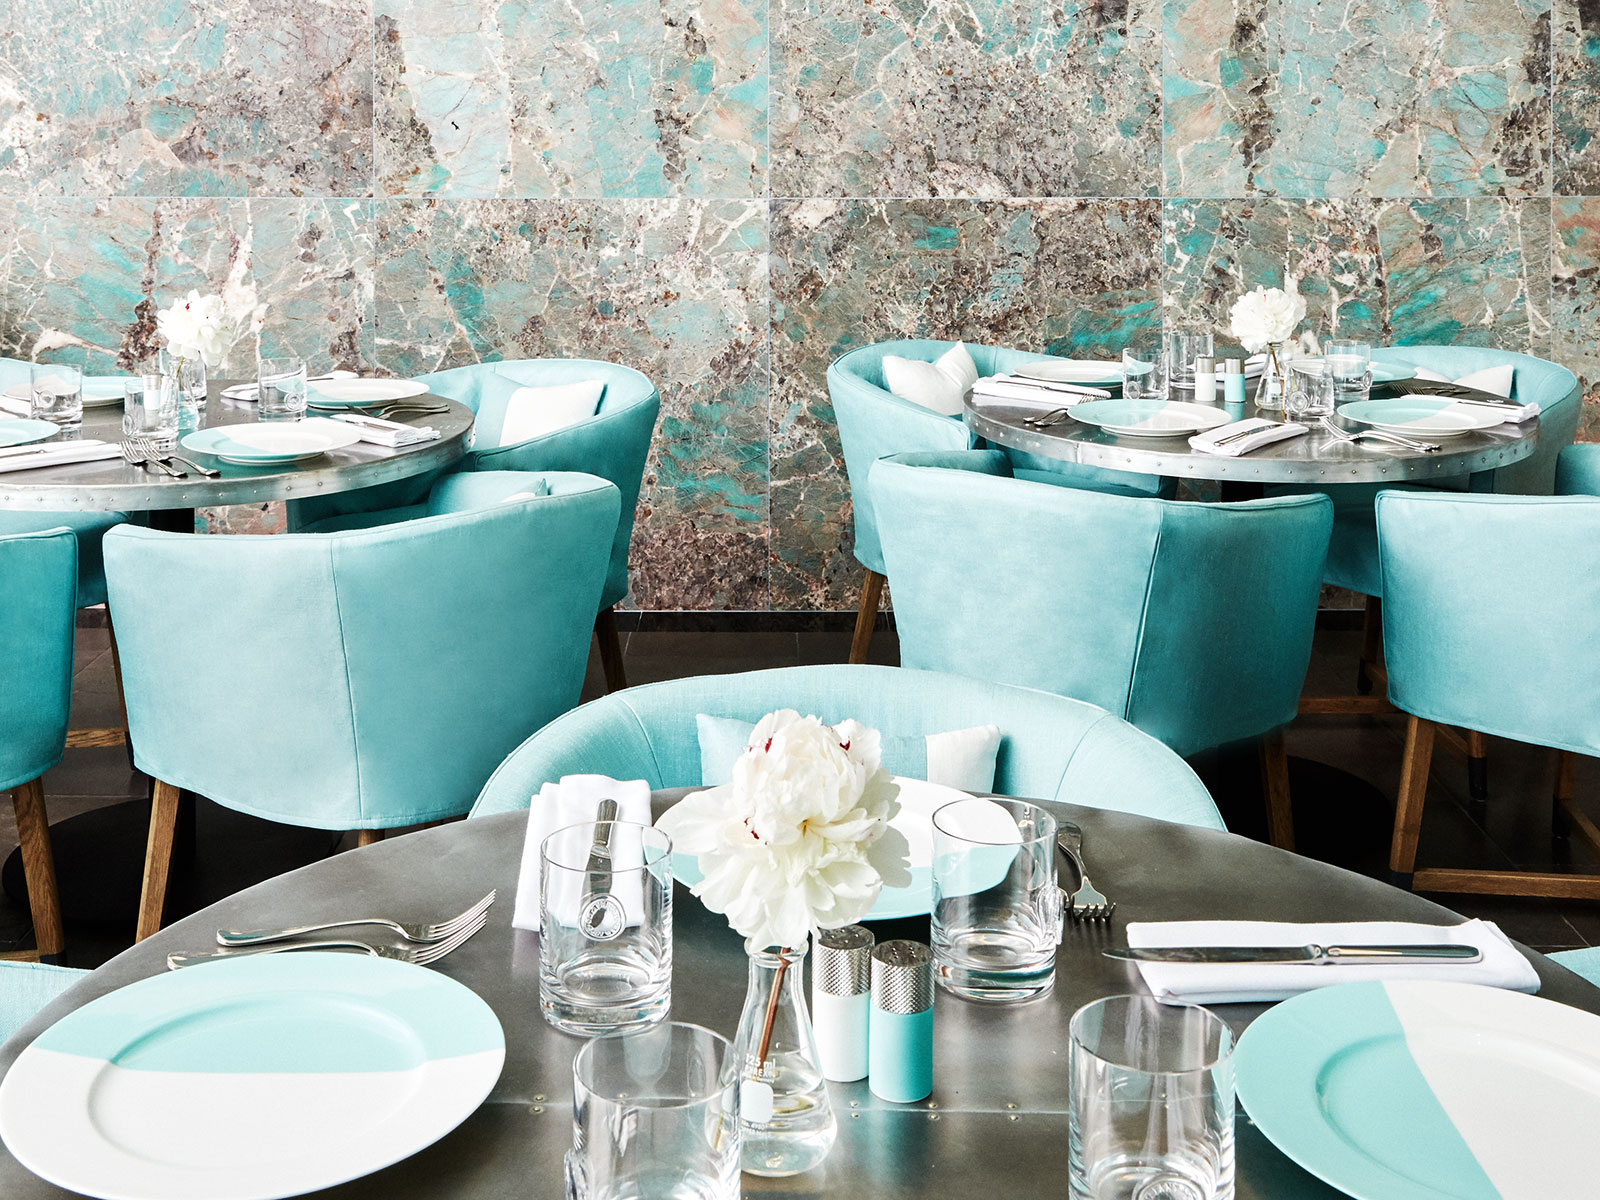 Breakfast at Tiffany's: Jewelry store to actually offer in-store dining